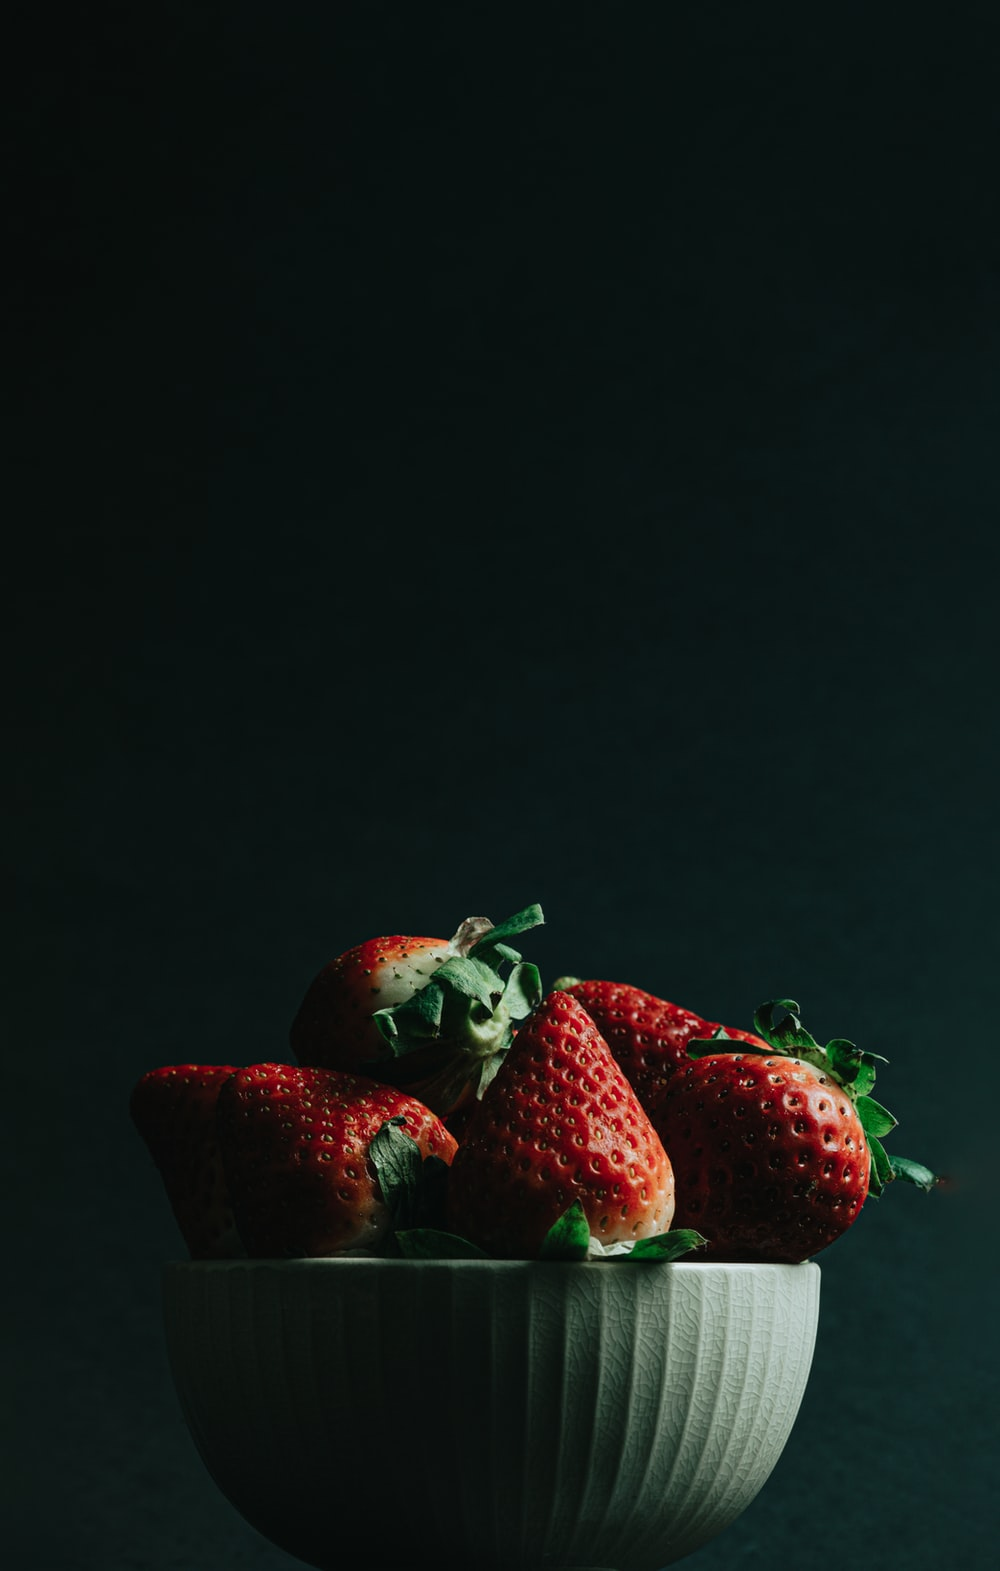 red strawberries on black surface